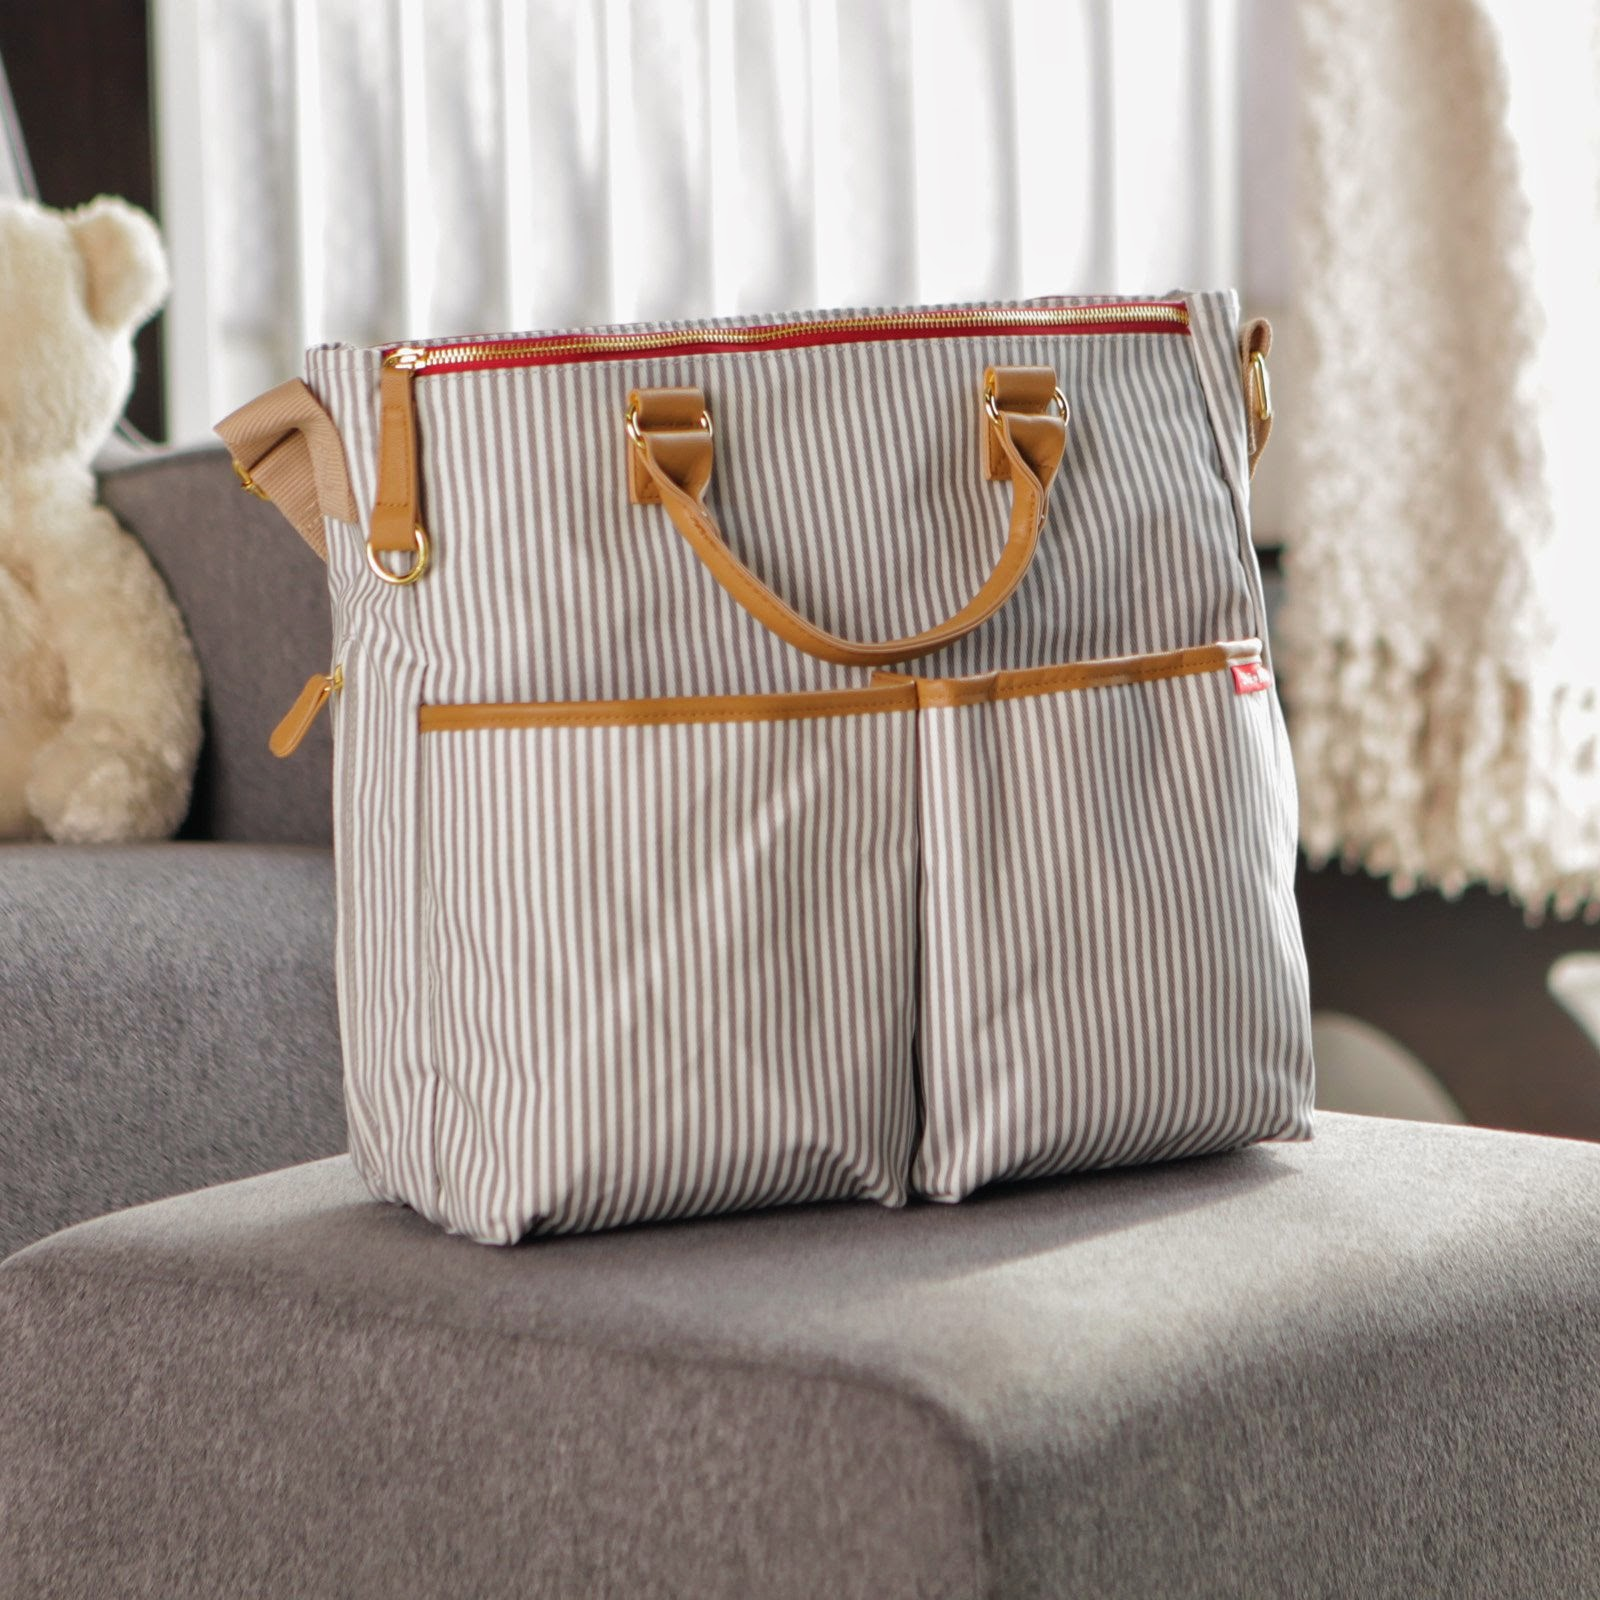 53f0200ff35 Stylish Skip Hop Deluxe Diaper Bag   Life s Tiny Miracles